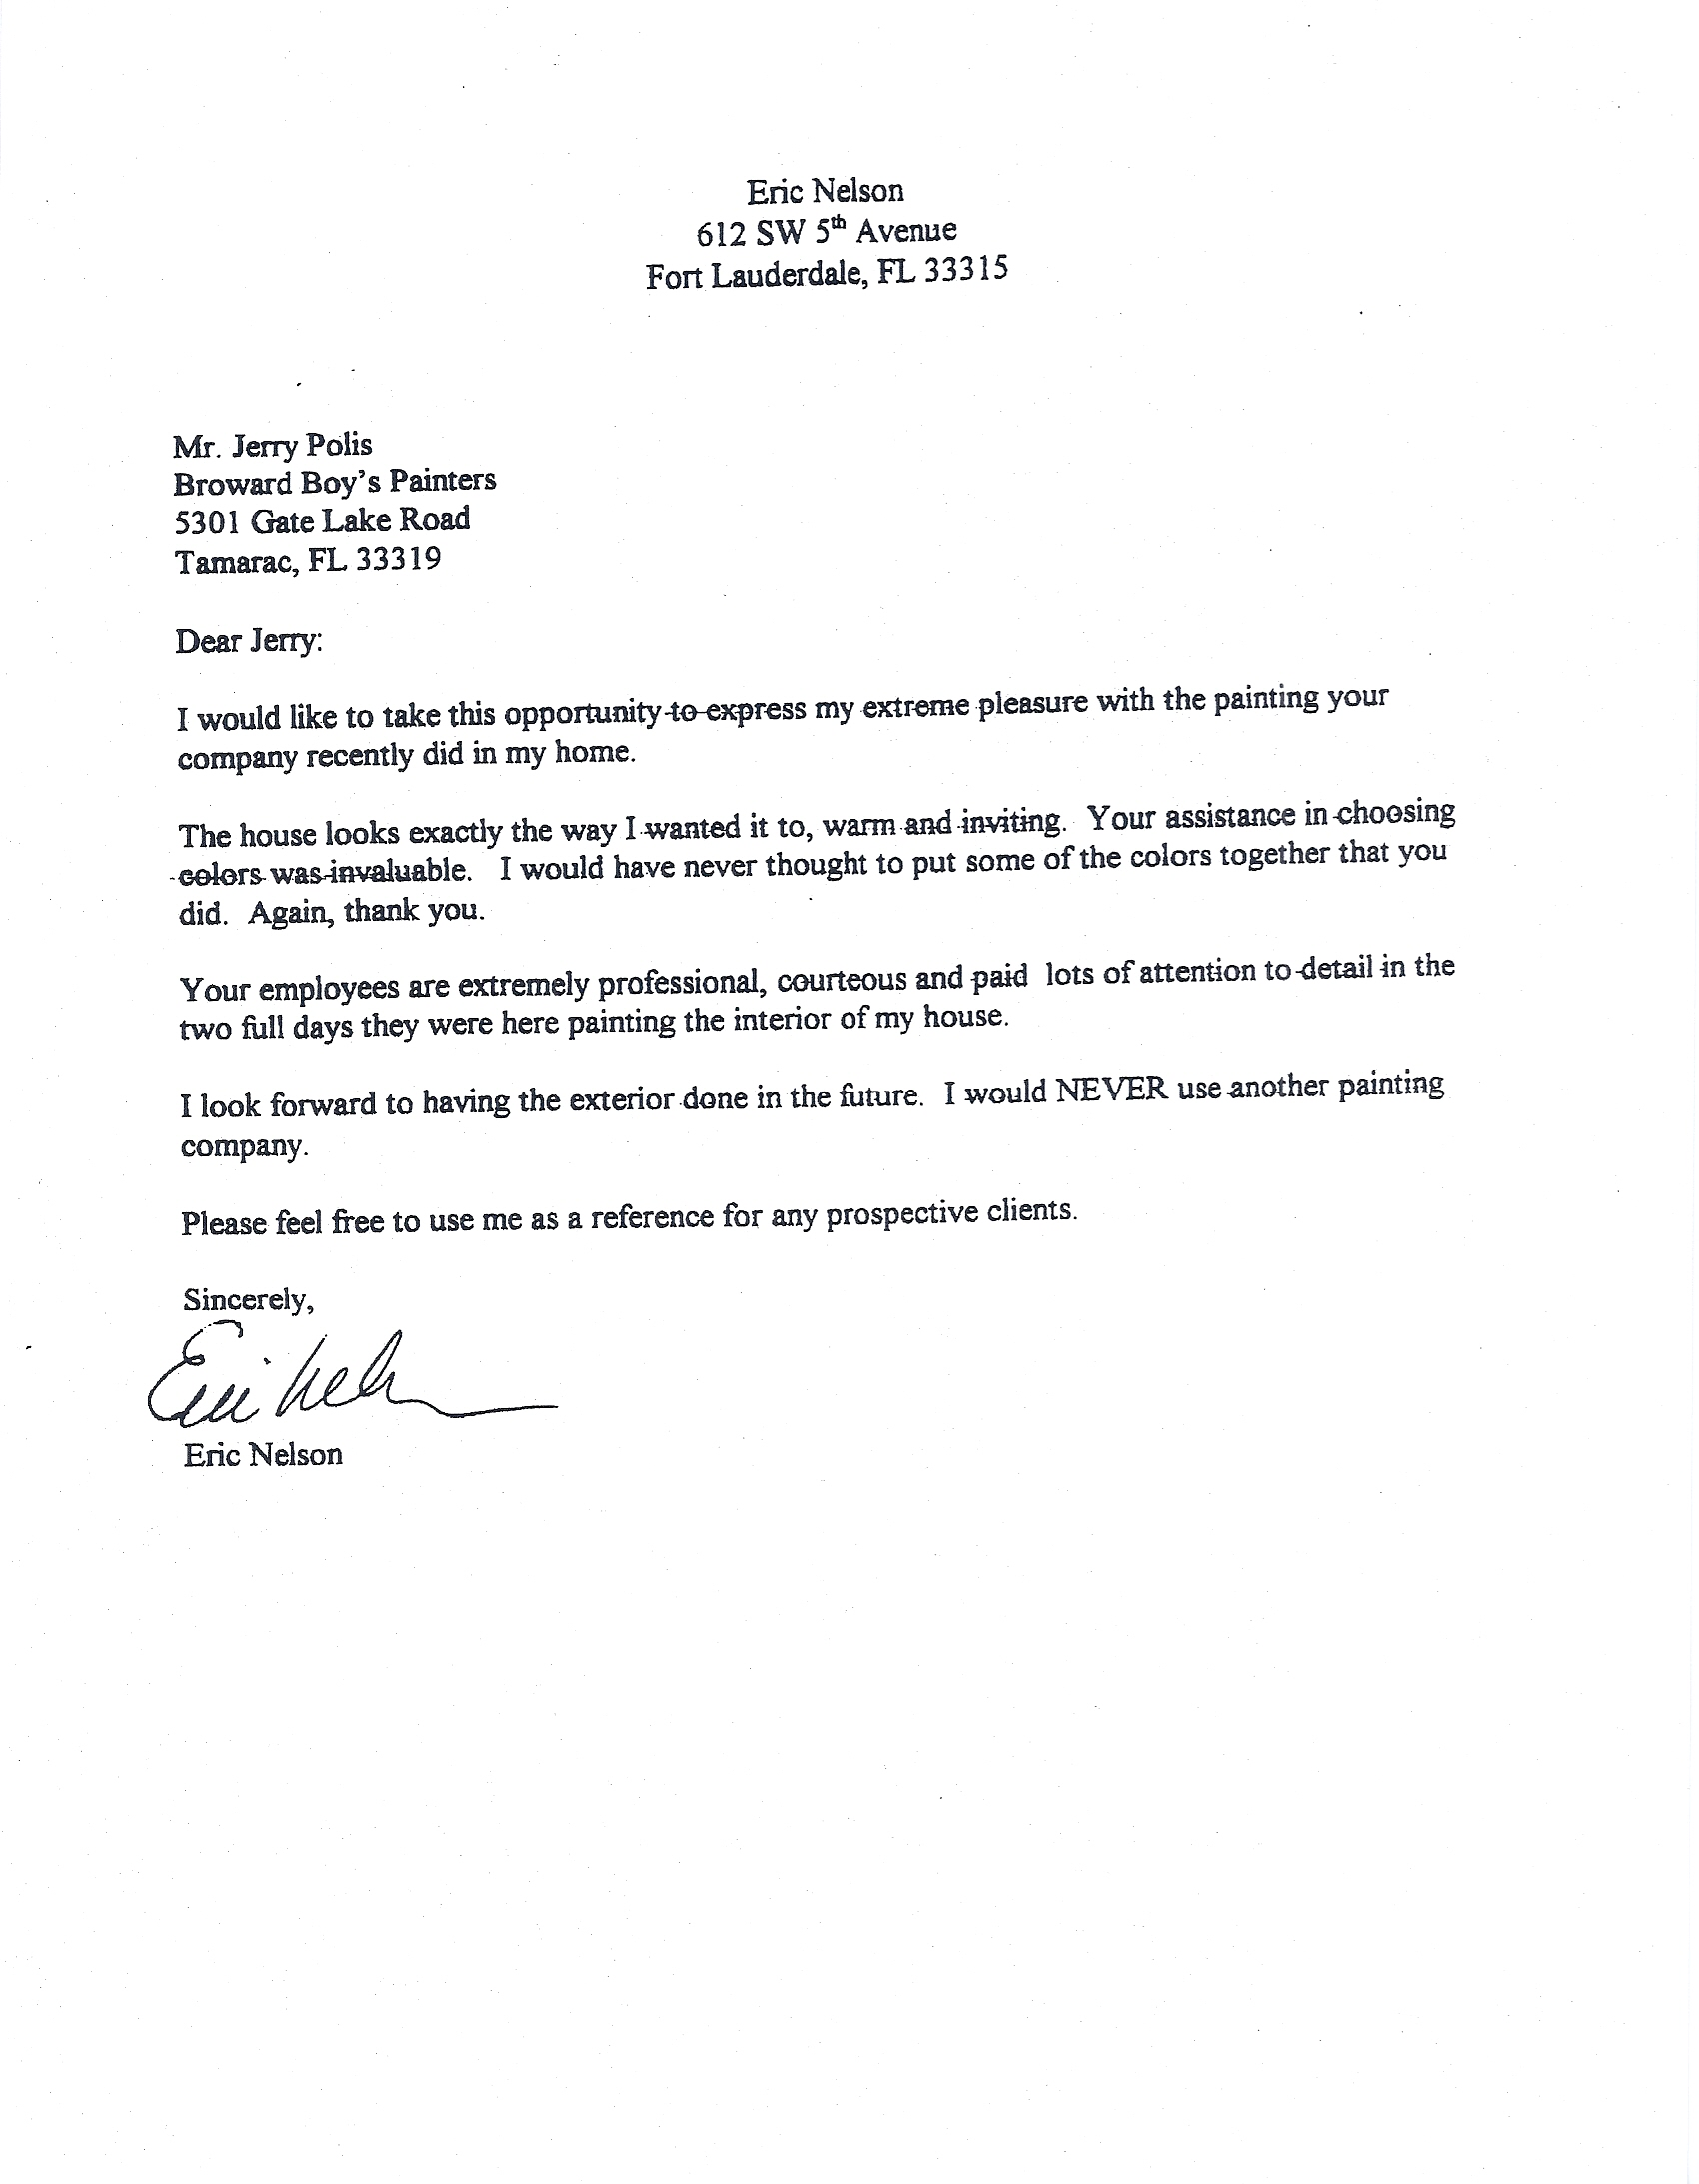 Scan_Pic0012 Sample Hoa Letter Template on new appointment, for fence, architectural approval, towing company, board president owners, approval rental, leaf clean up,